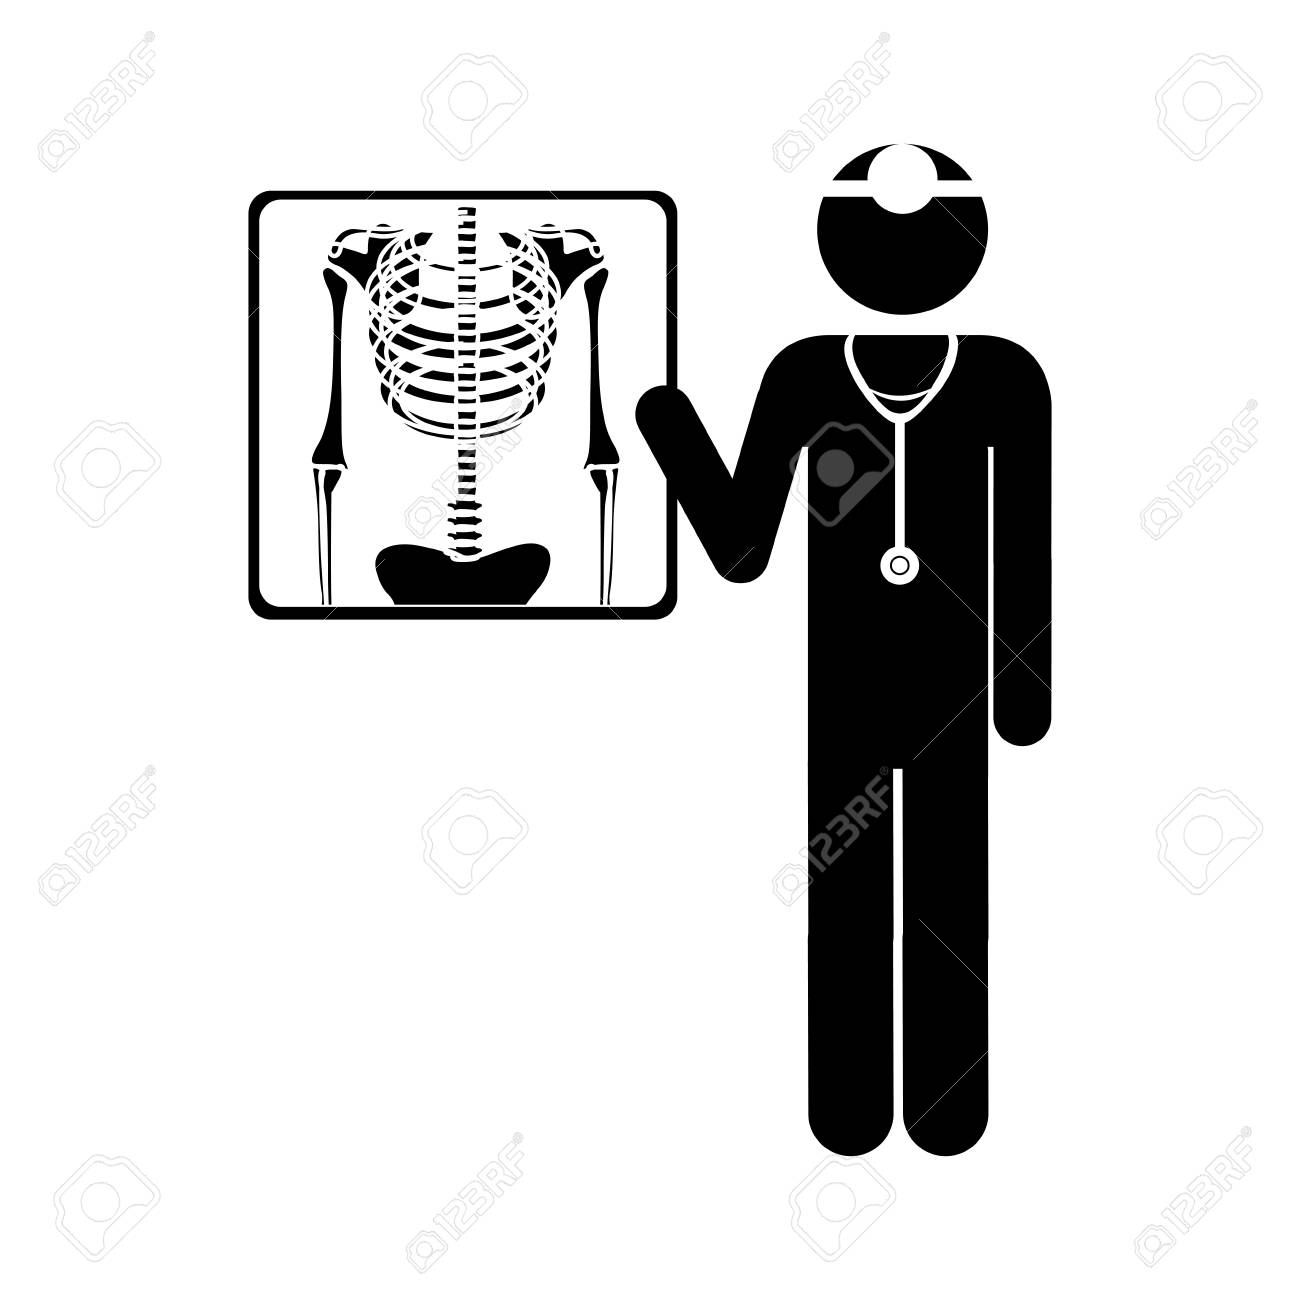 Chest x ray Clipart and Stock Illustrations. 5,014 Chest x ray vector EPS  illustrations and drawings available to search from thousands of royalty  free clip art graphic designers.